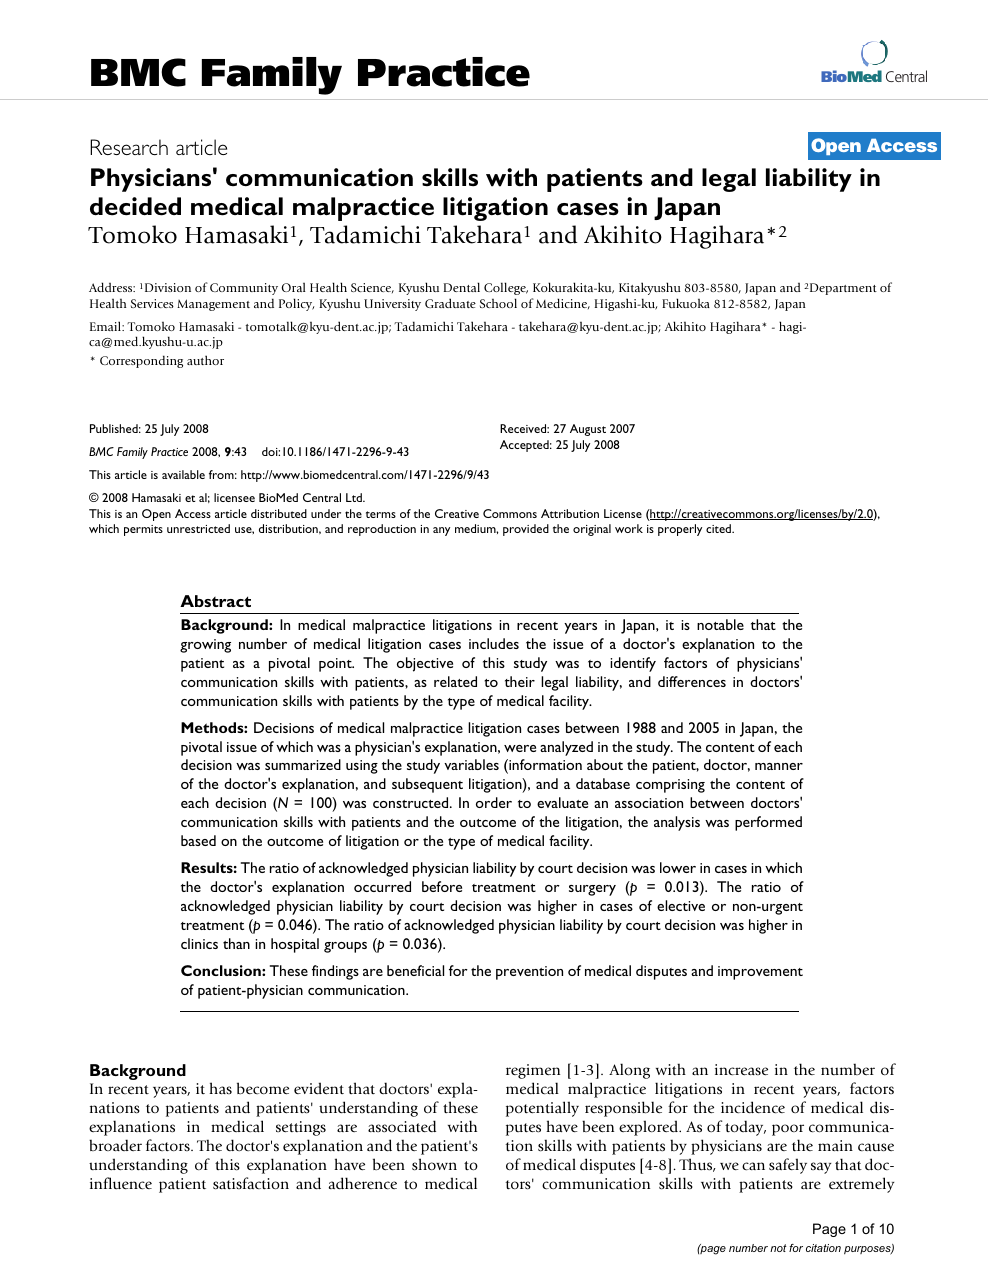 Physicians' communication skills with patients and legal